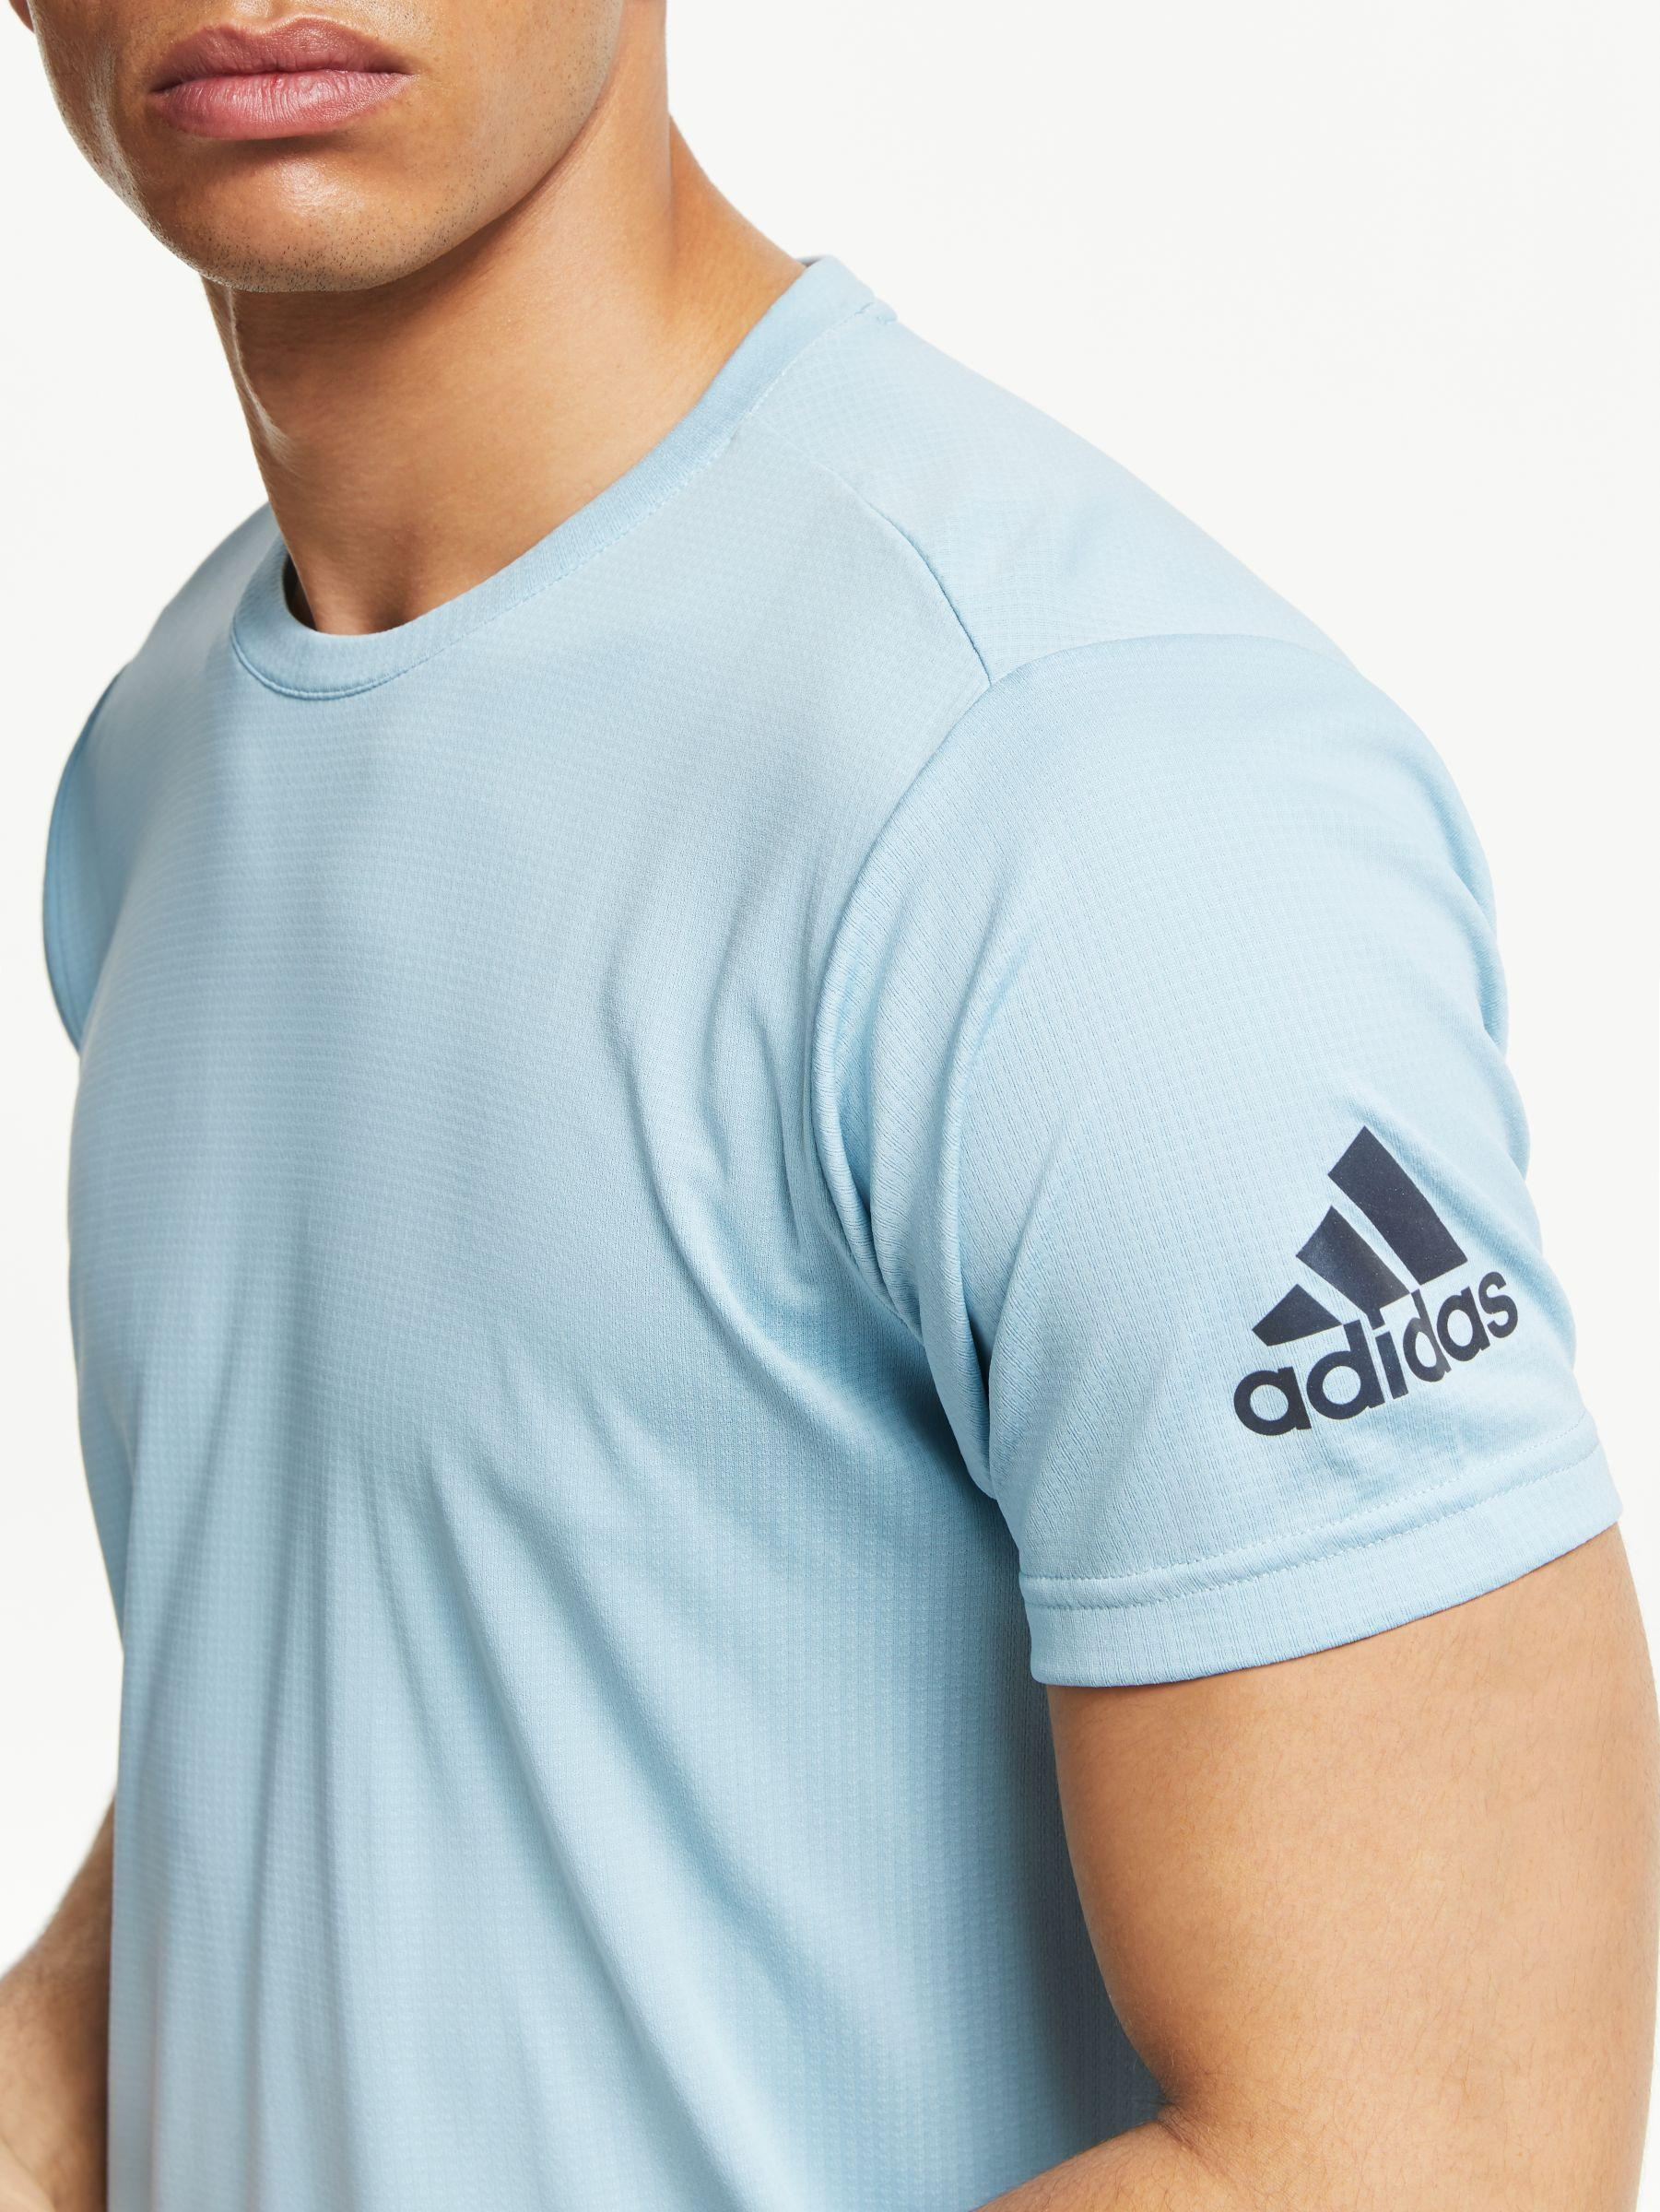 adidas Freelift Climacool Training T shirt in Blue for Men